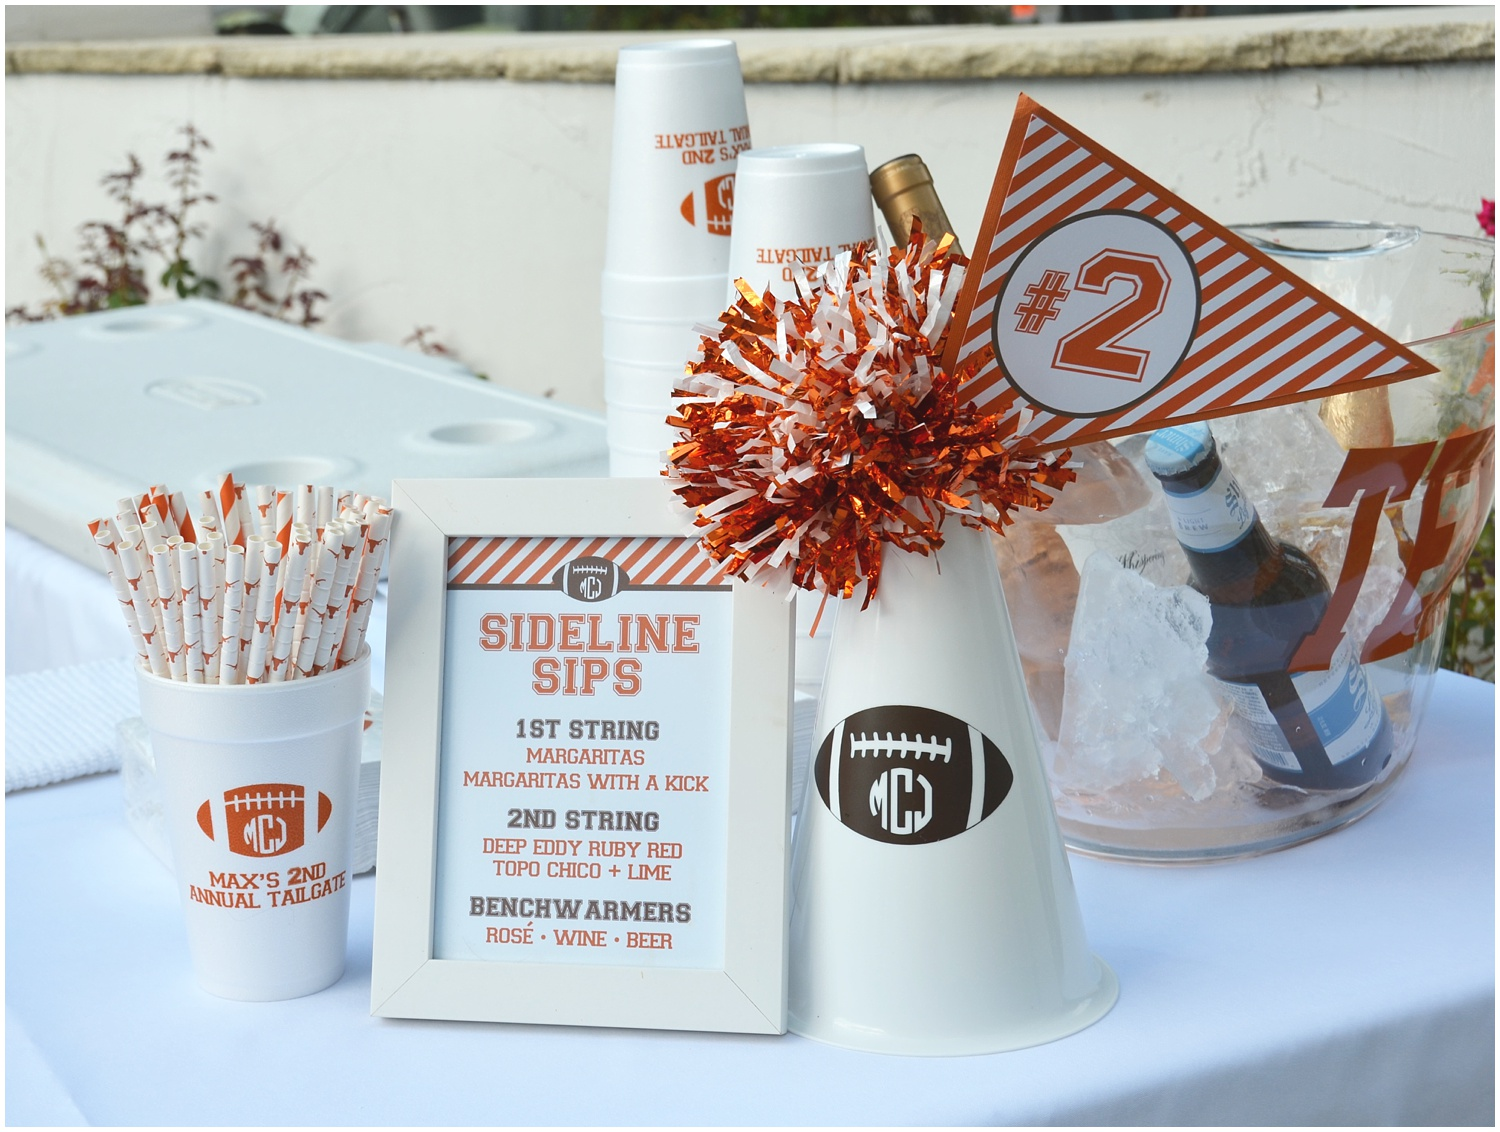 Tailgate_themedchildrensparty_AustinTX_0119.jpg